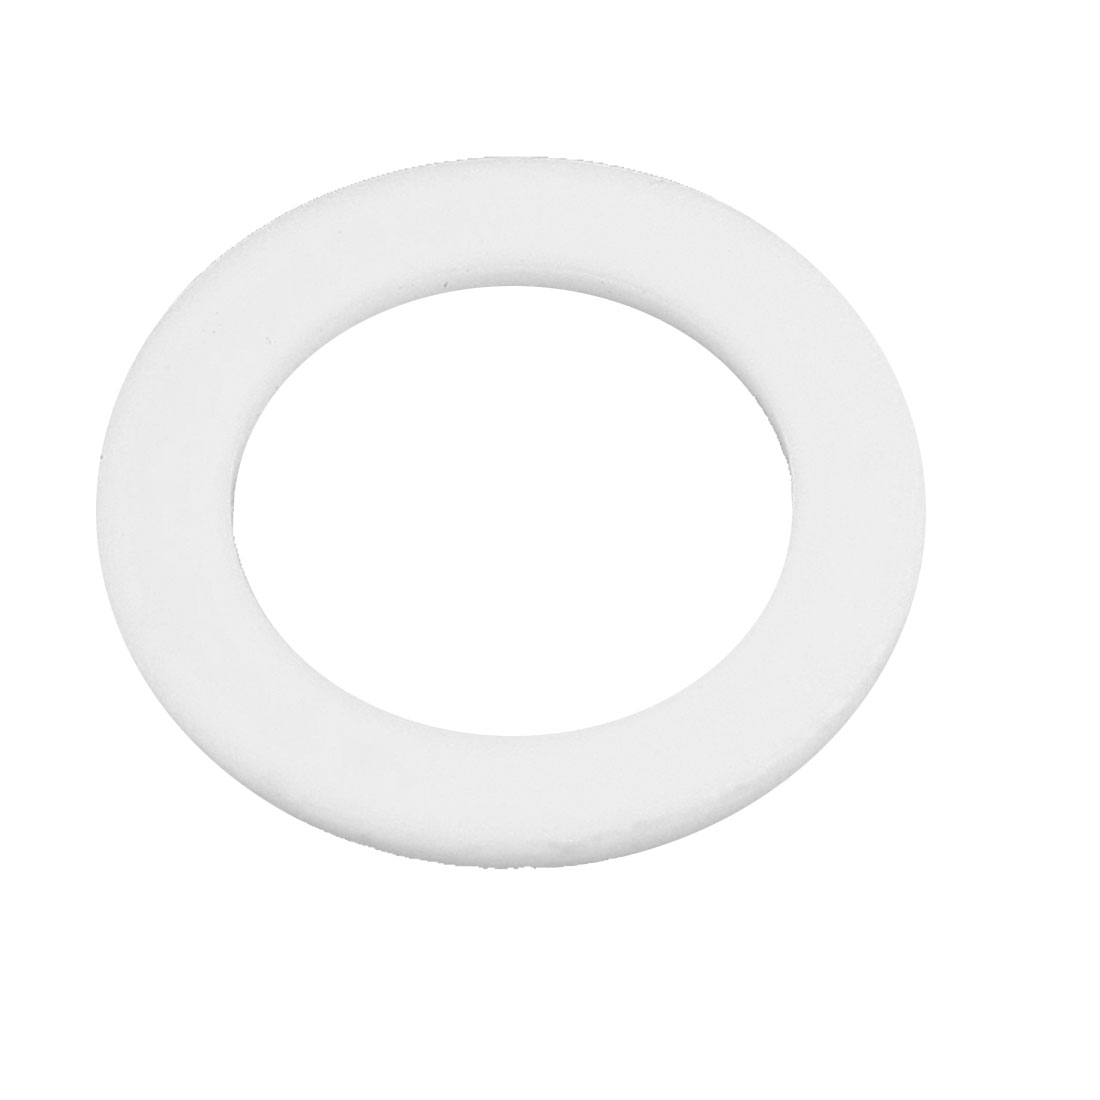 20mm x 30mm x 2mm Sealing Flat PTFE Gasket Washer White